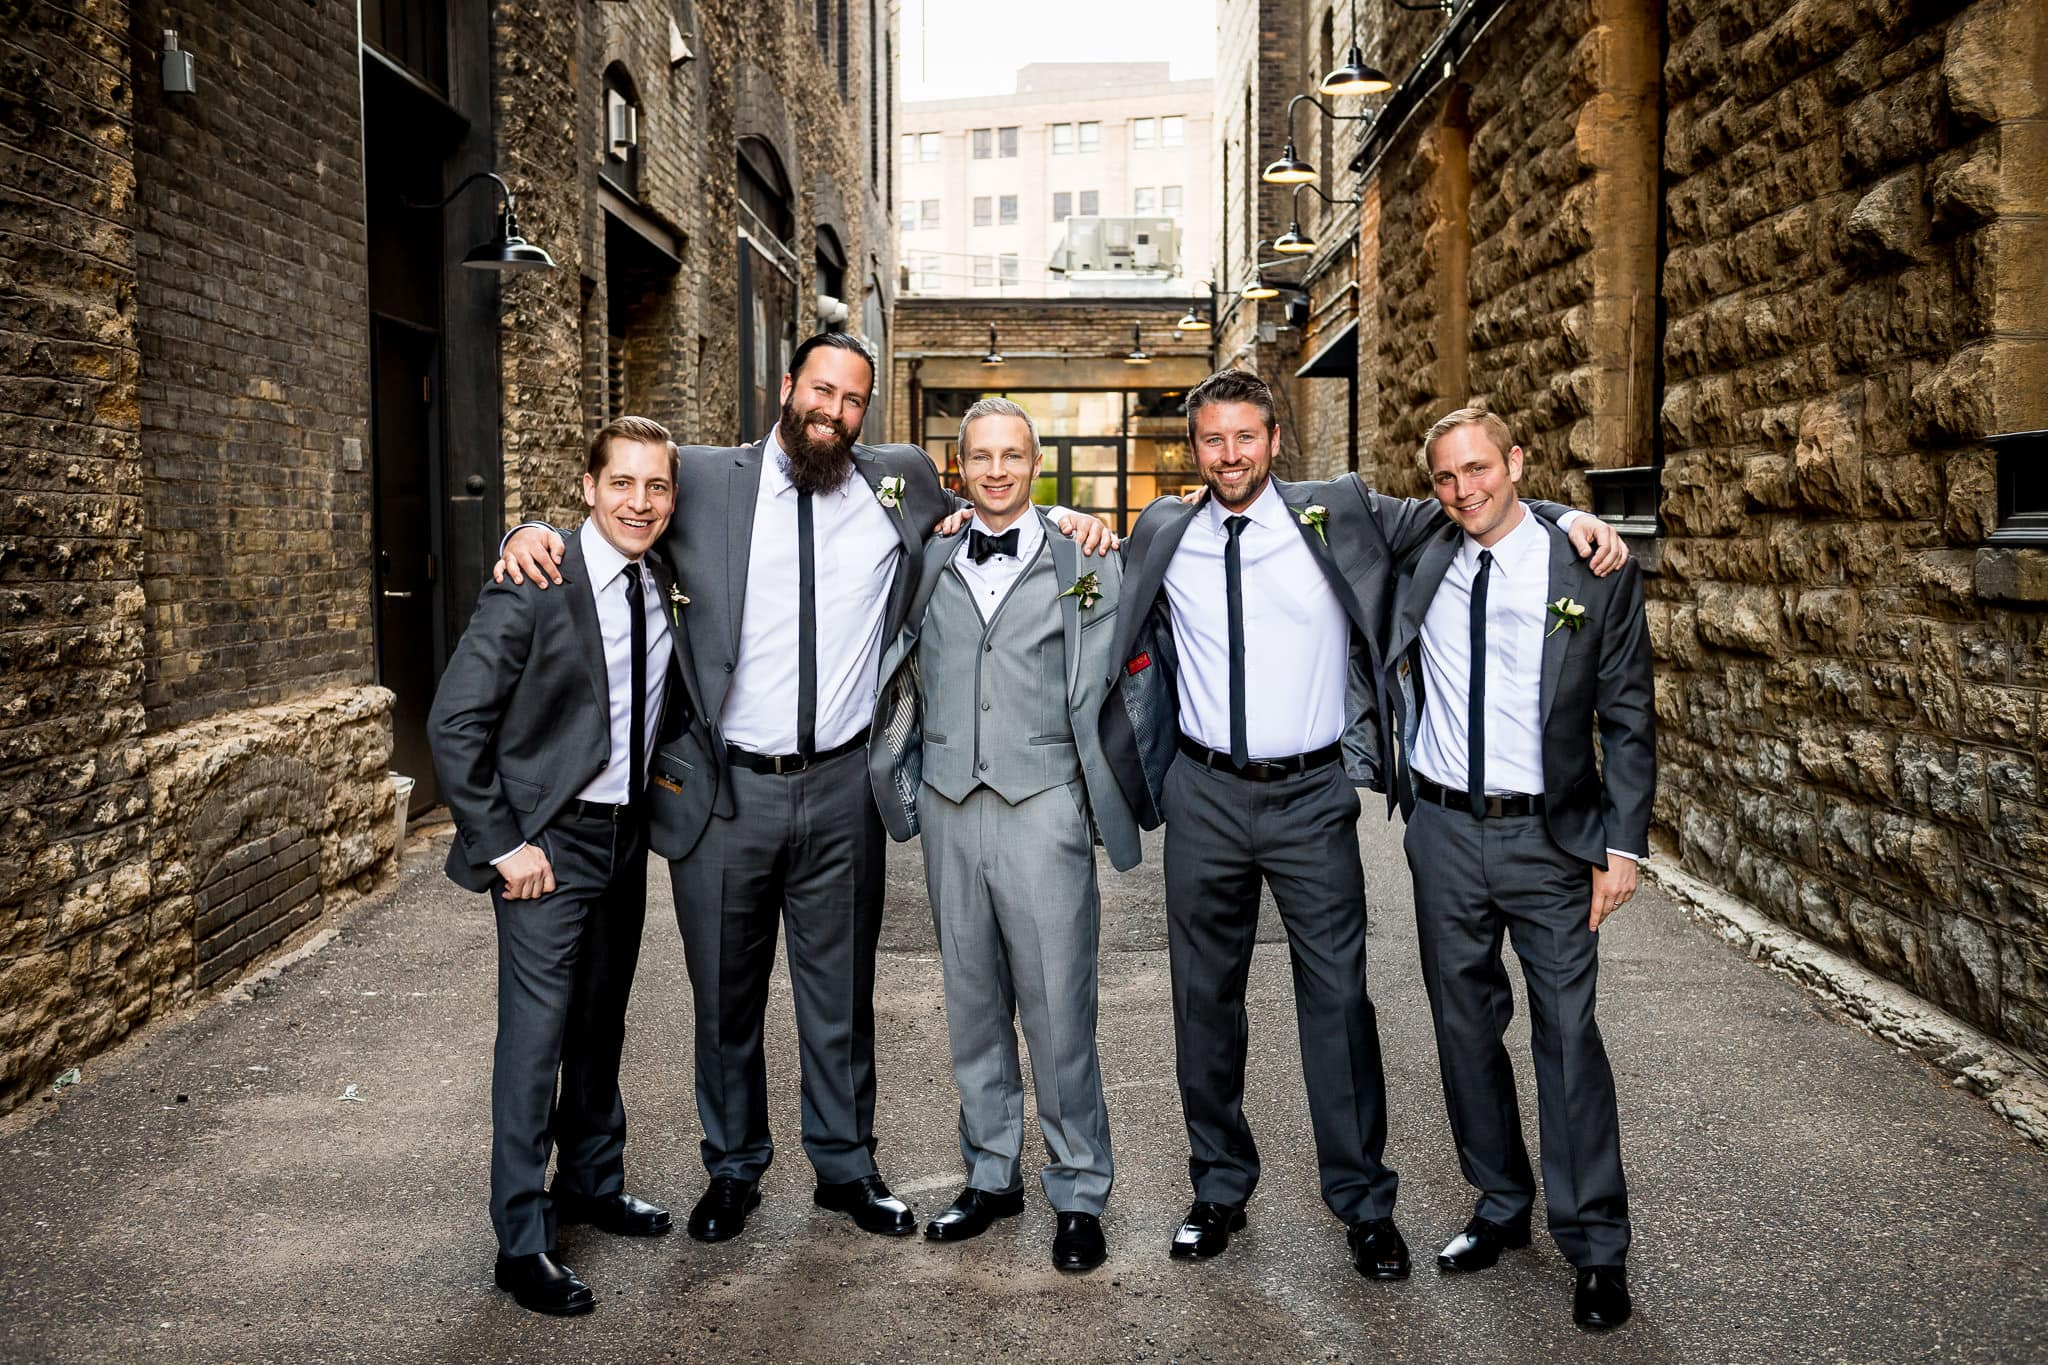 Groomsmen together in the alley behind the Hewing Hotel